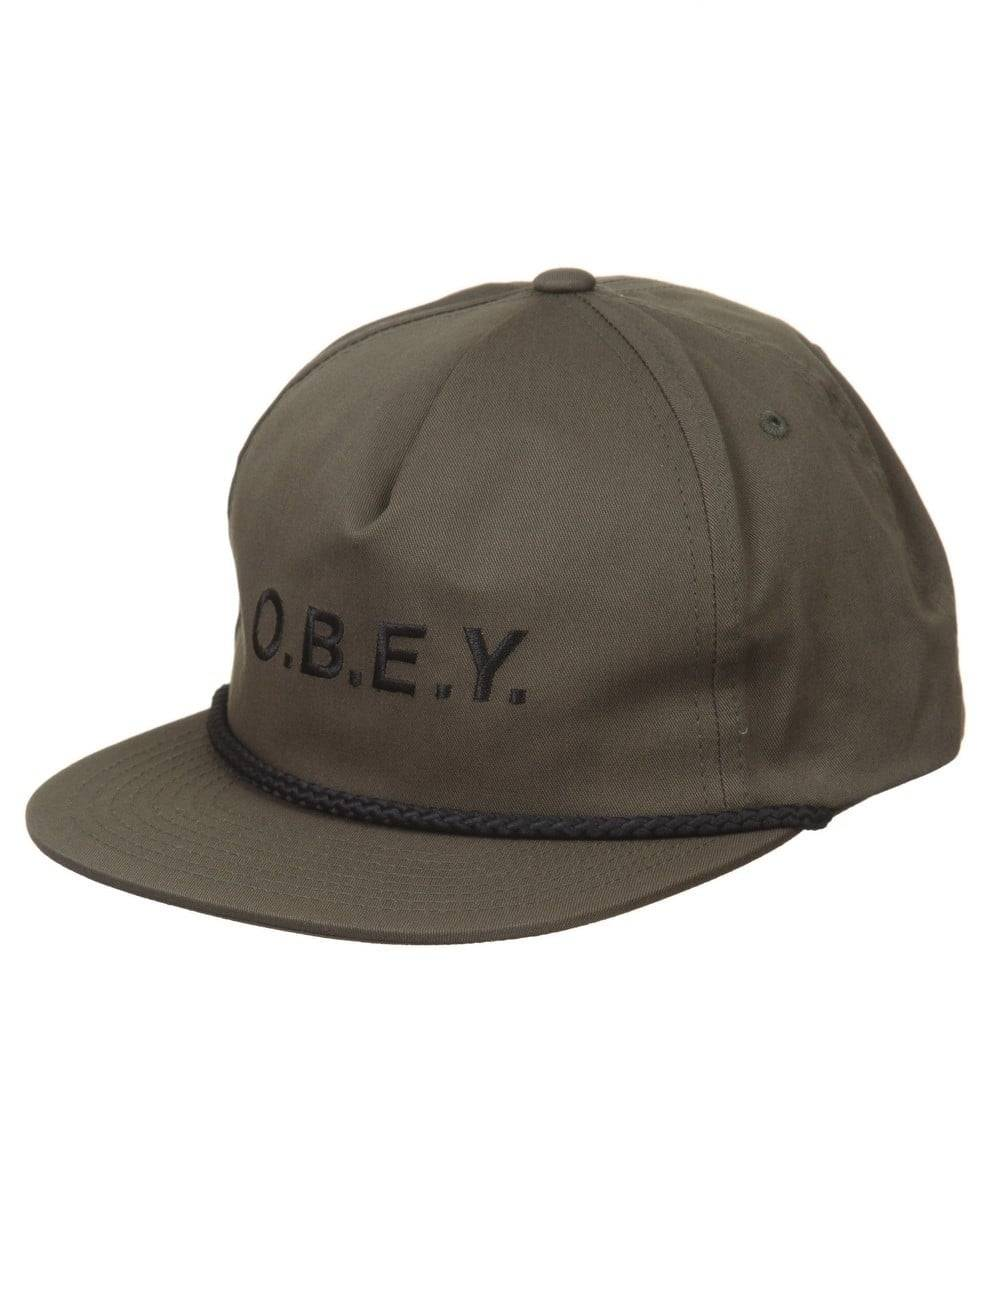 Obey Clothing Contorted Snapback Hat - Army Size: ONE SIZE, Colour: Ar